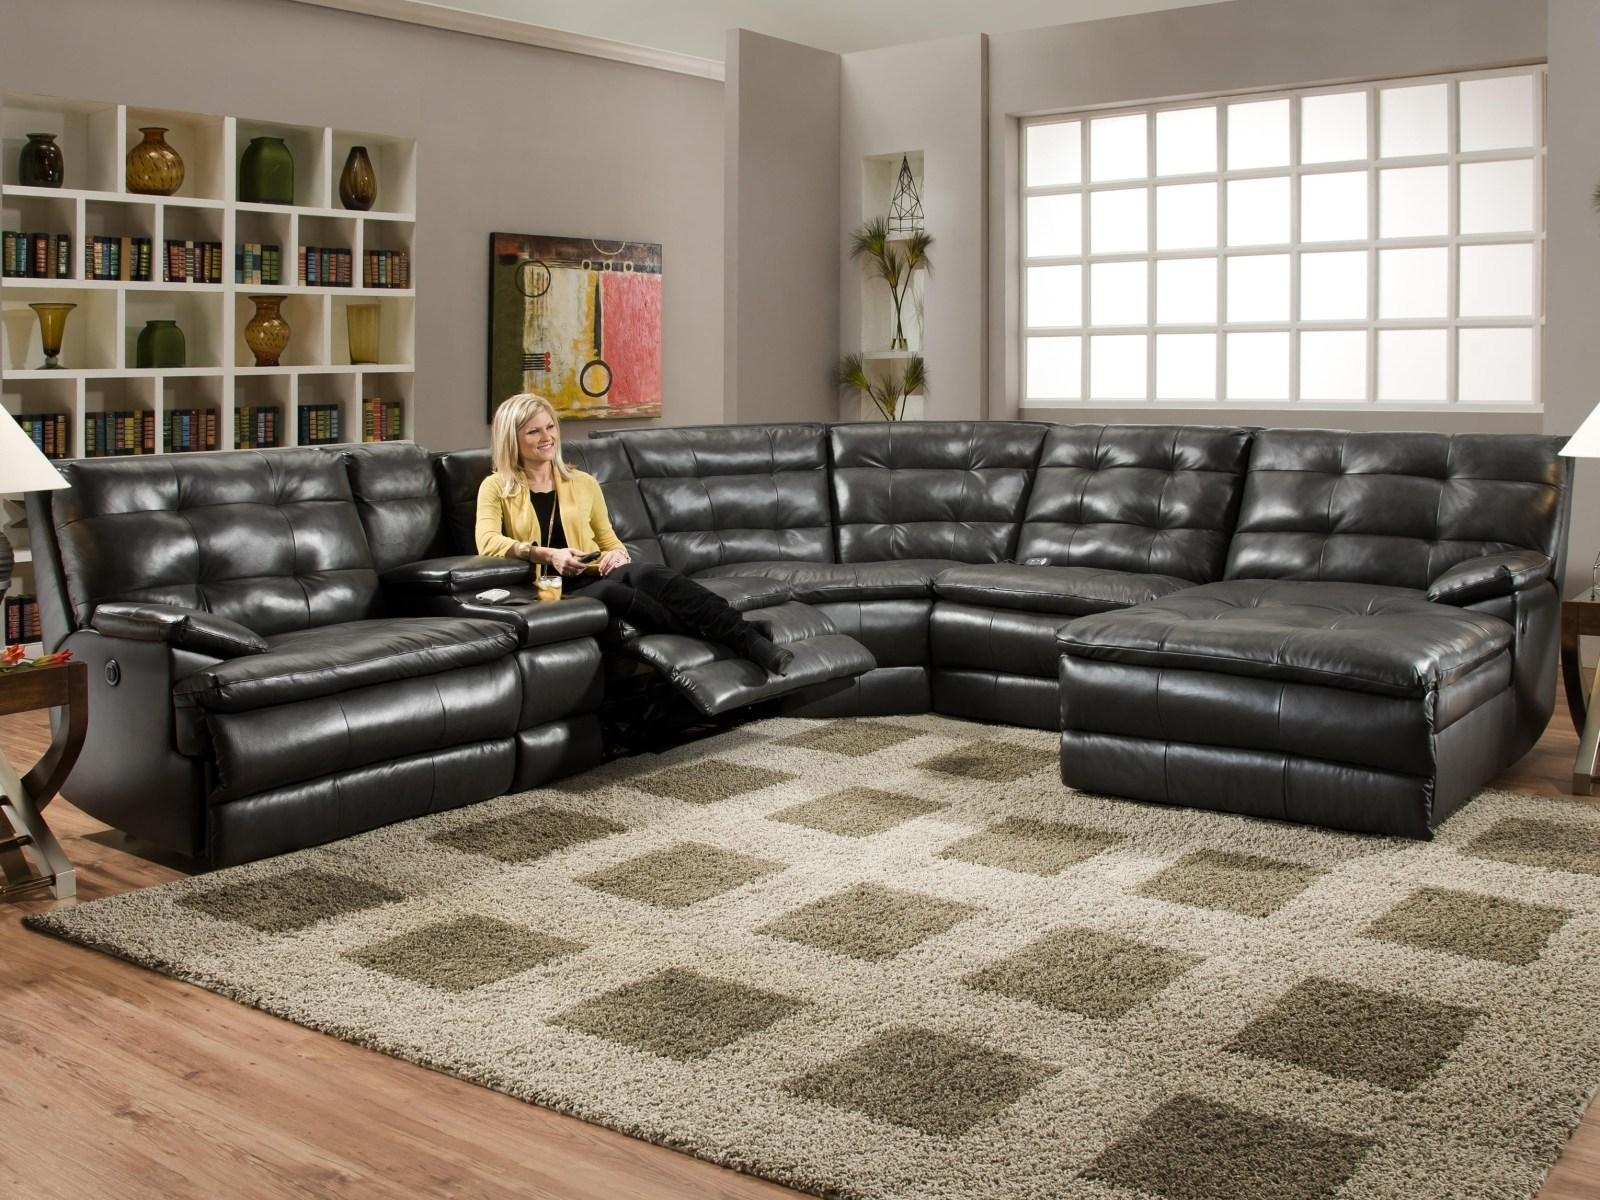 ▻ Sofa : 29 Good Looking Large Sectional Sofa With Chaise Lounge Pertaining To Large Sofa Sectionals (Image 2 of 20)